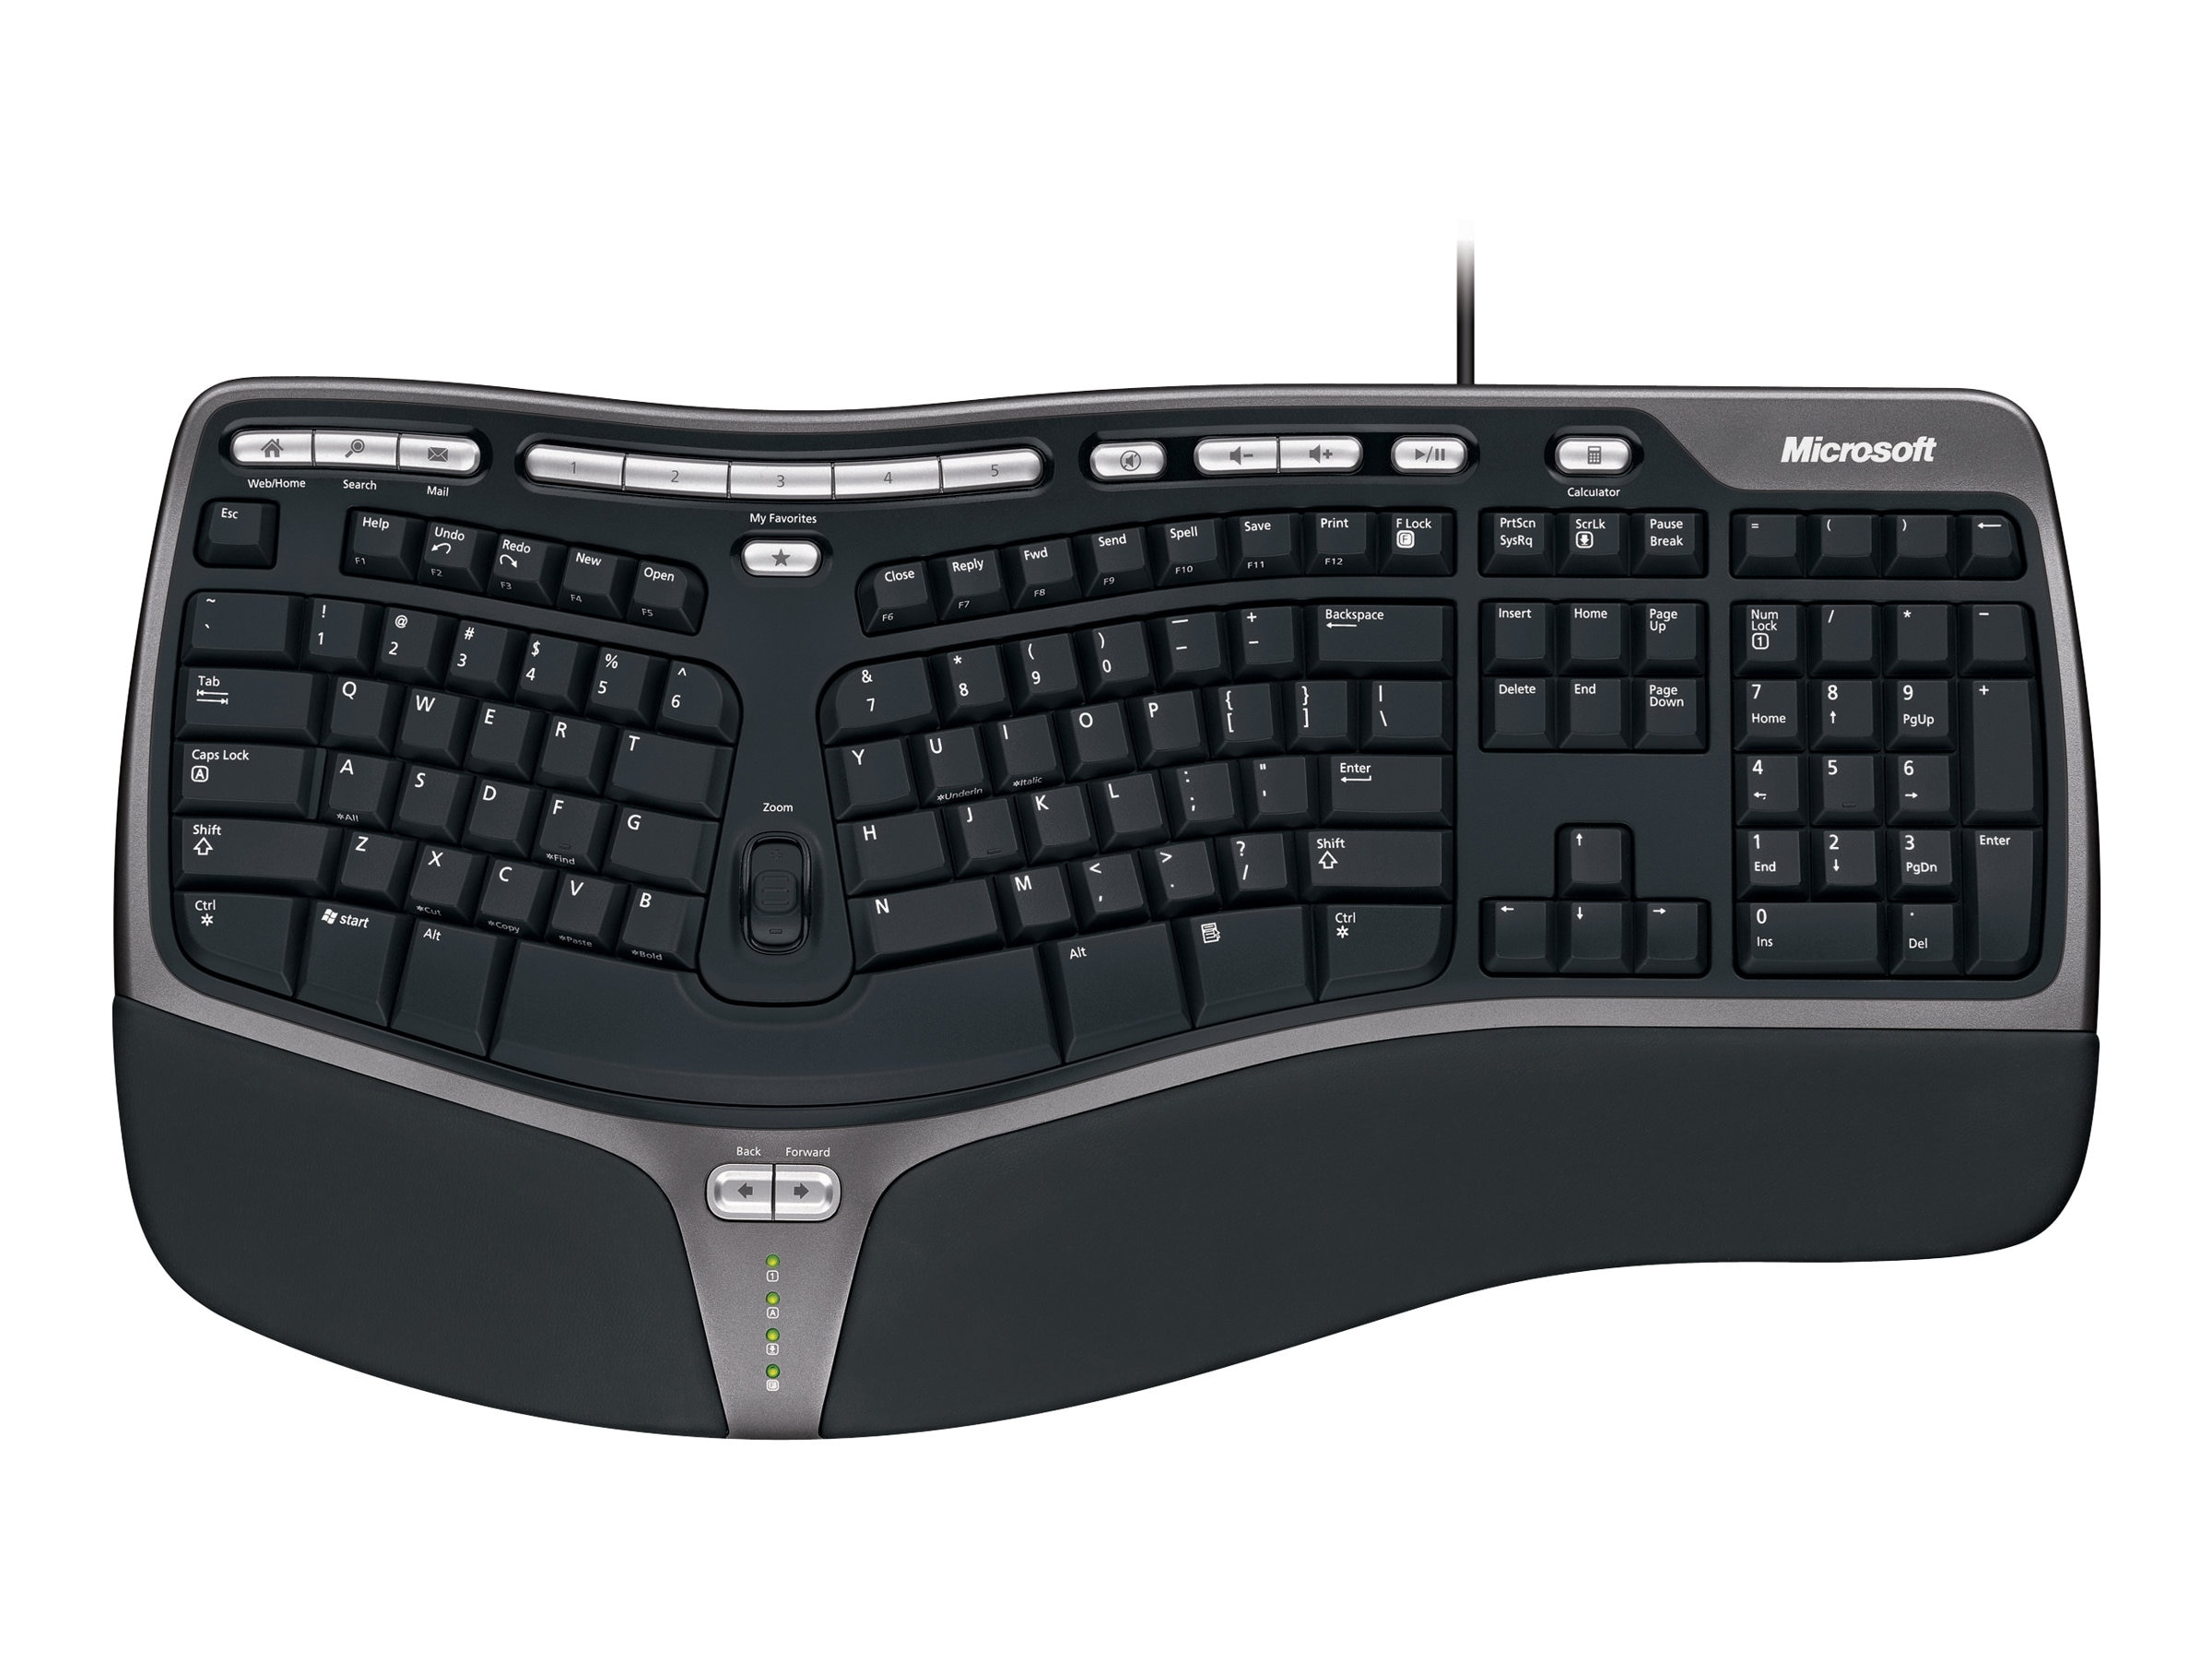 Microsoft Natural Ergonomic Keyboard 4000, B2M-00012